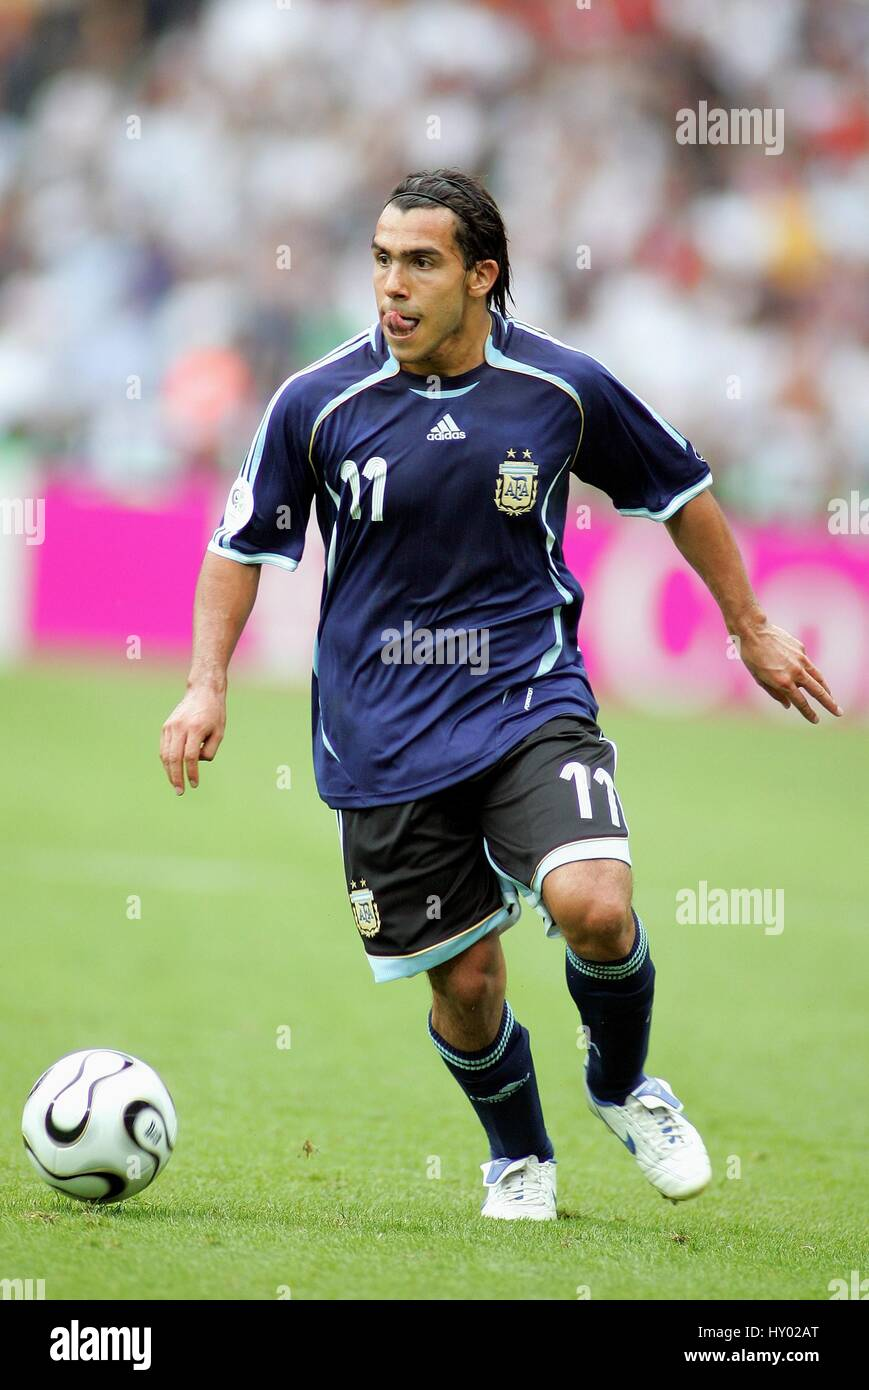 CARLOS TEVEZ ARGENTINA & CORINTHIANS WORLD CUP BERLIN GERMANY 30